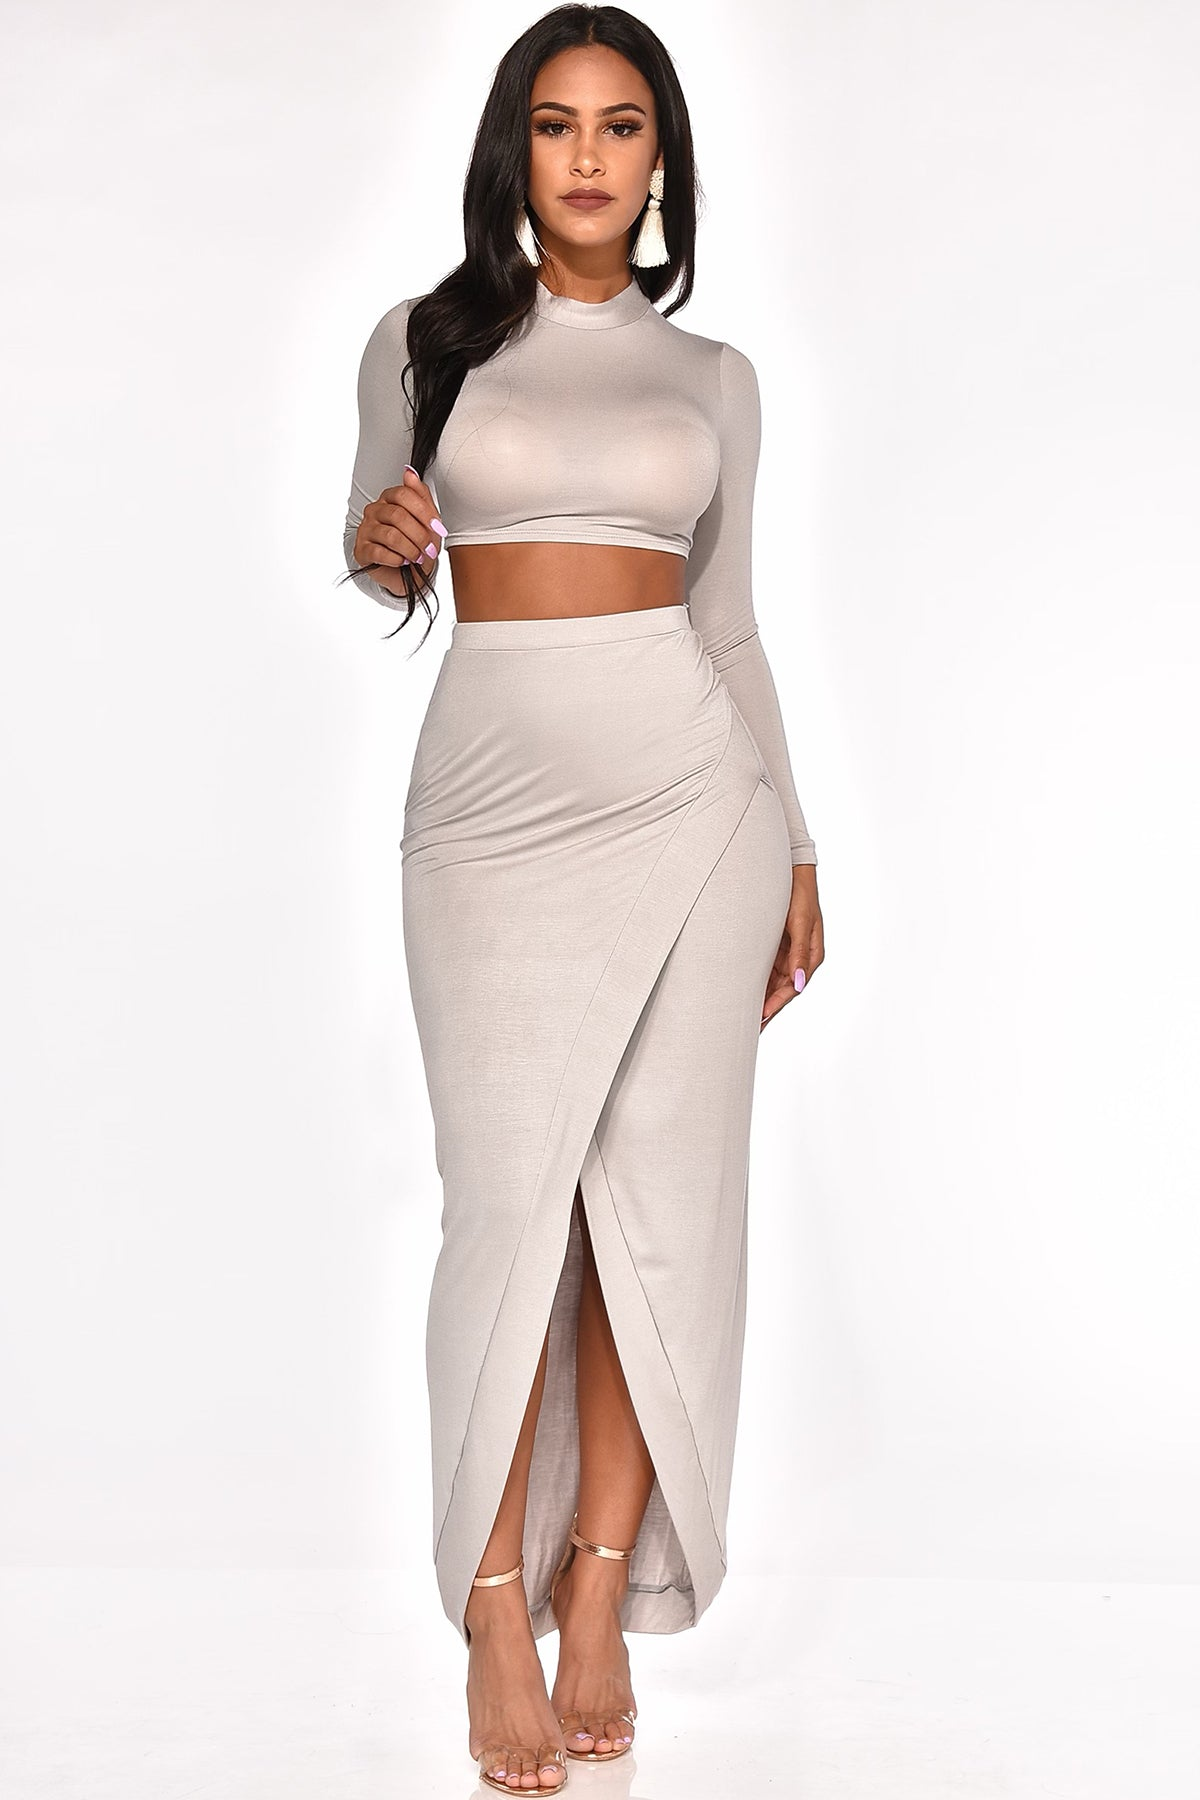 MORE THAN ENOUGH SKIRT SET